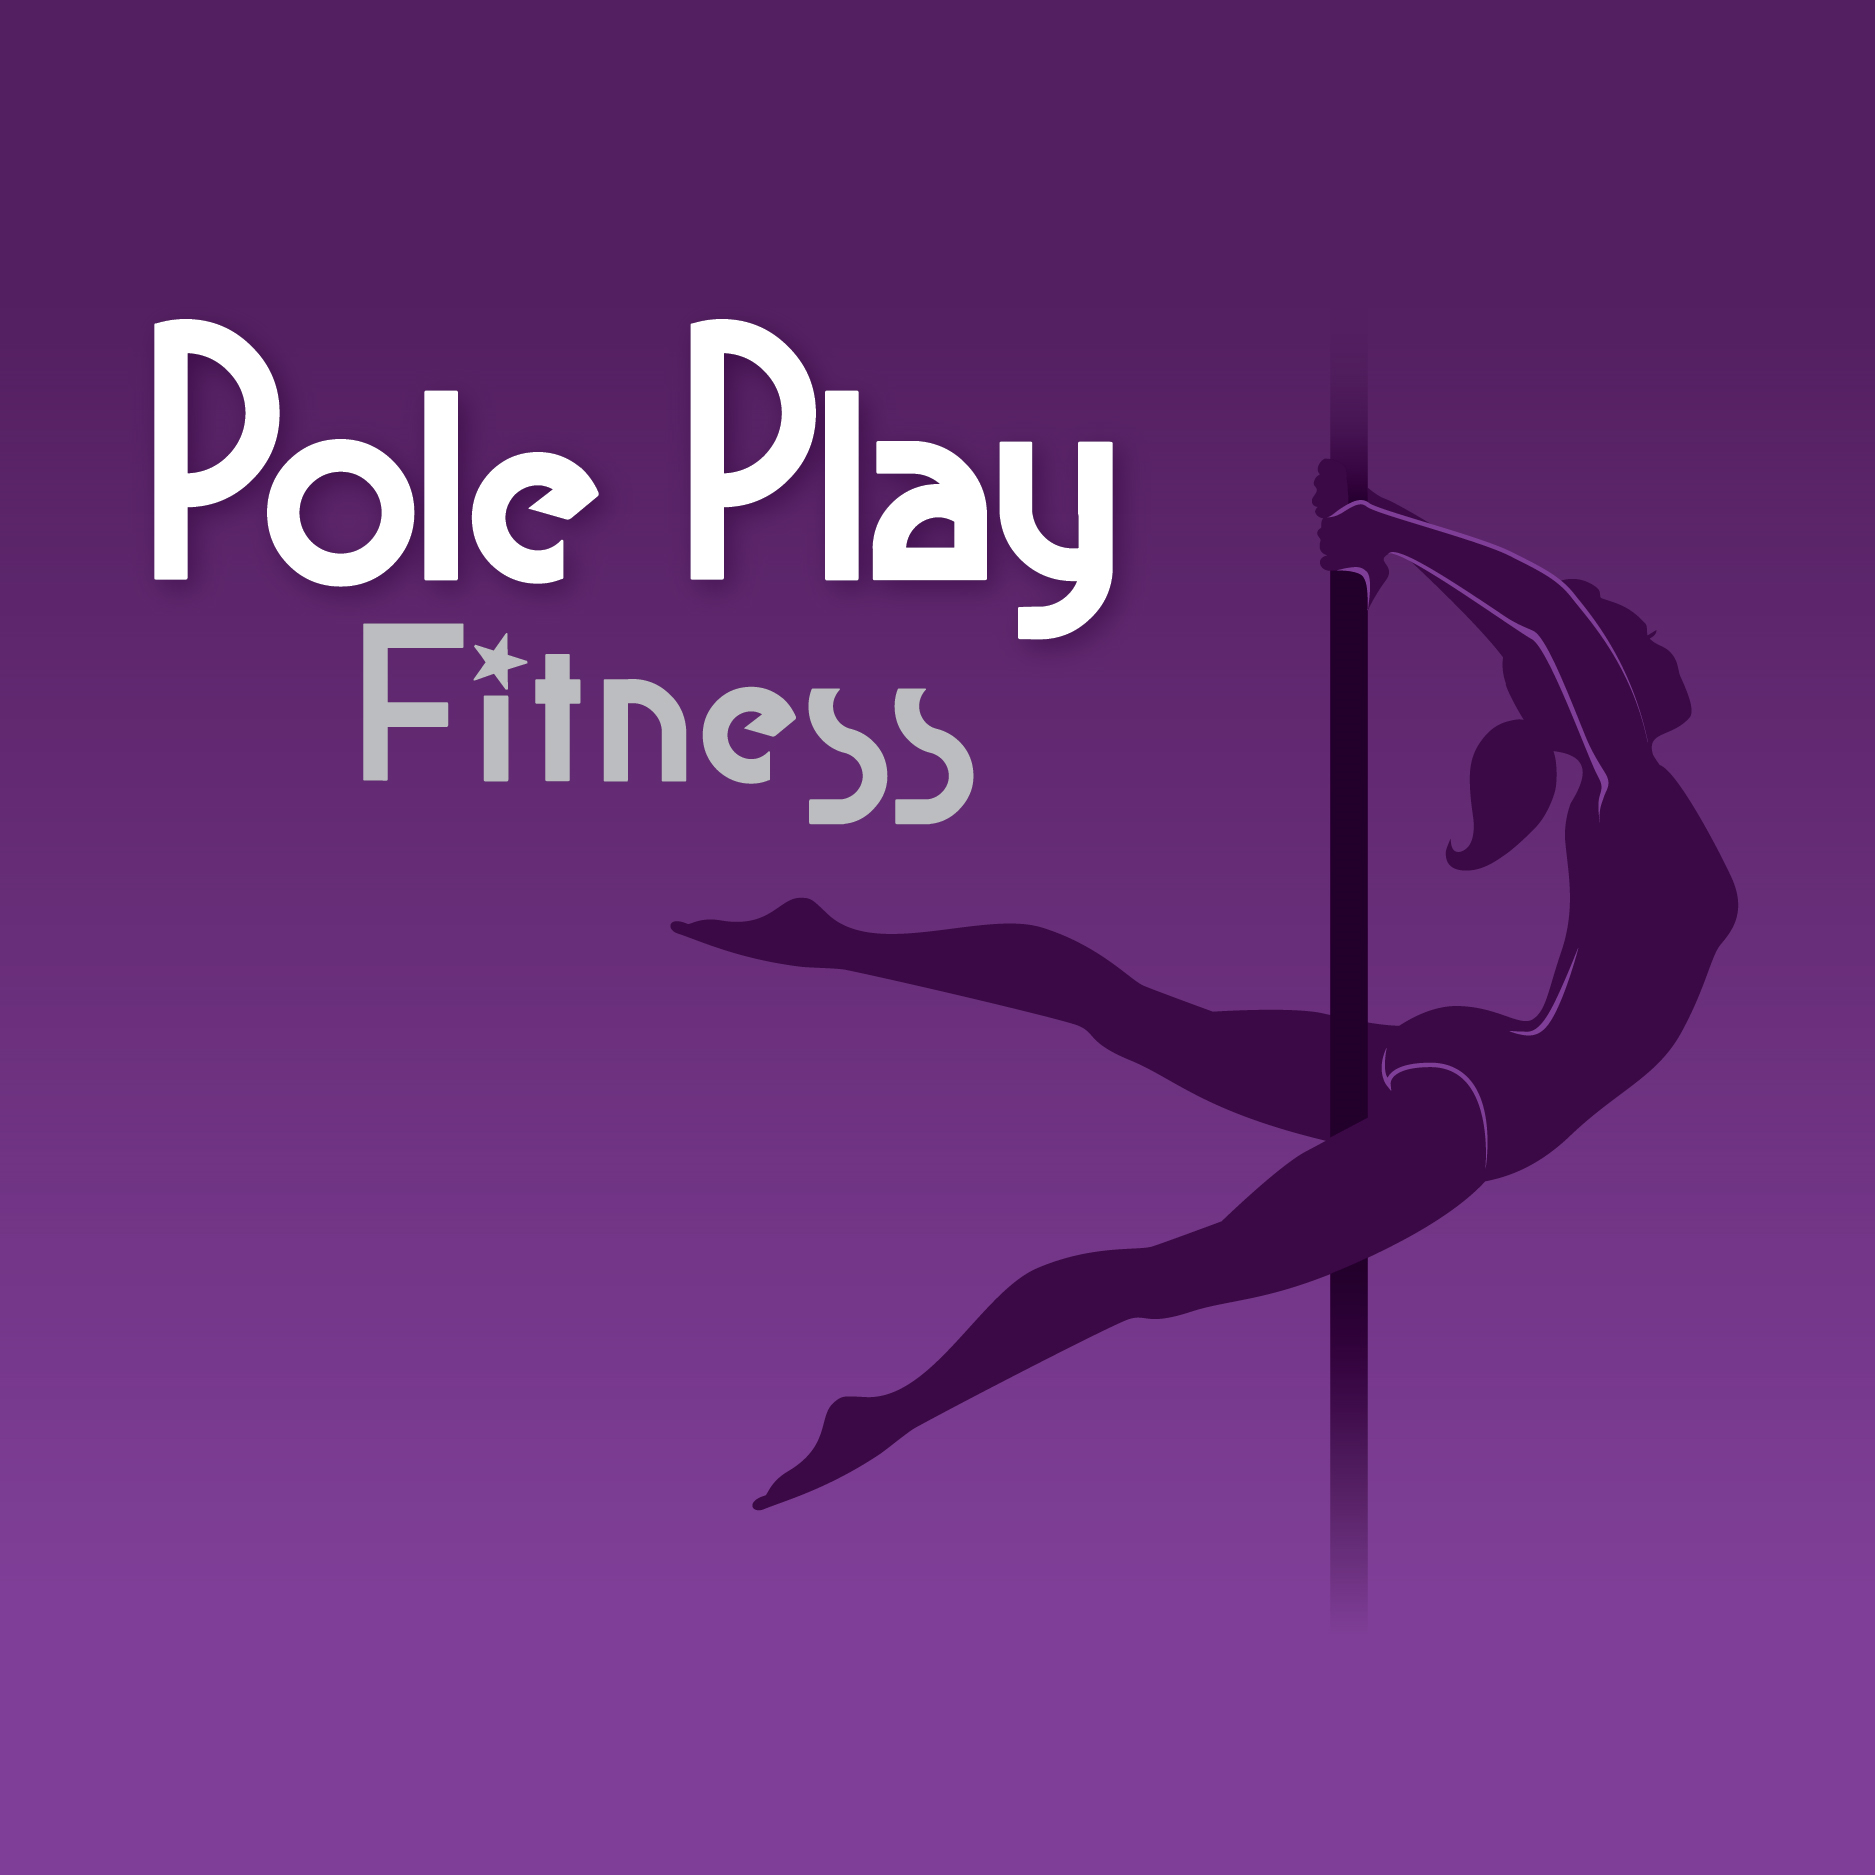 Pole Play Fitness 2021 Sponsor